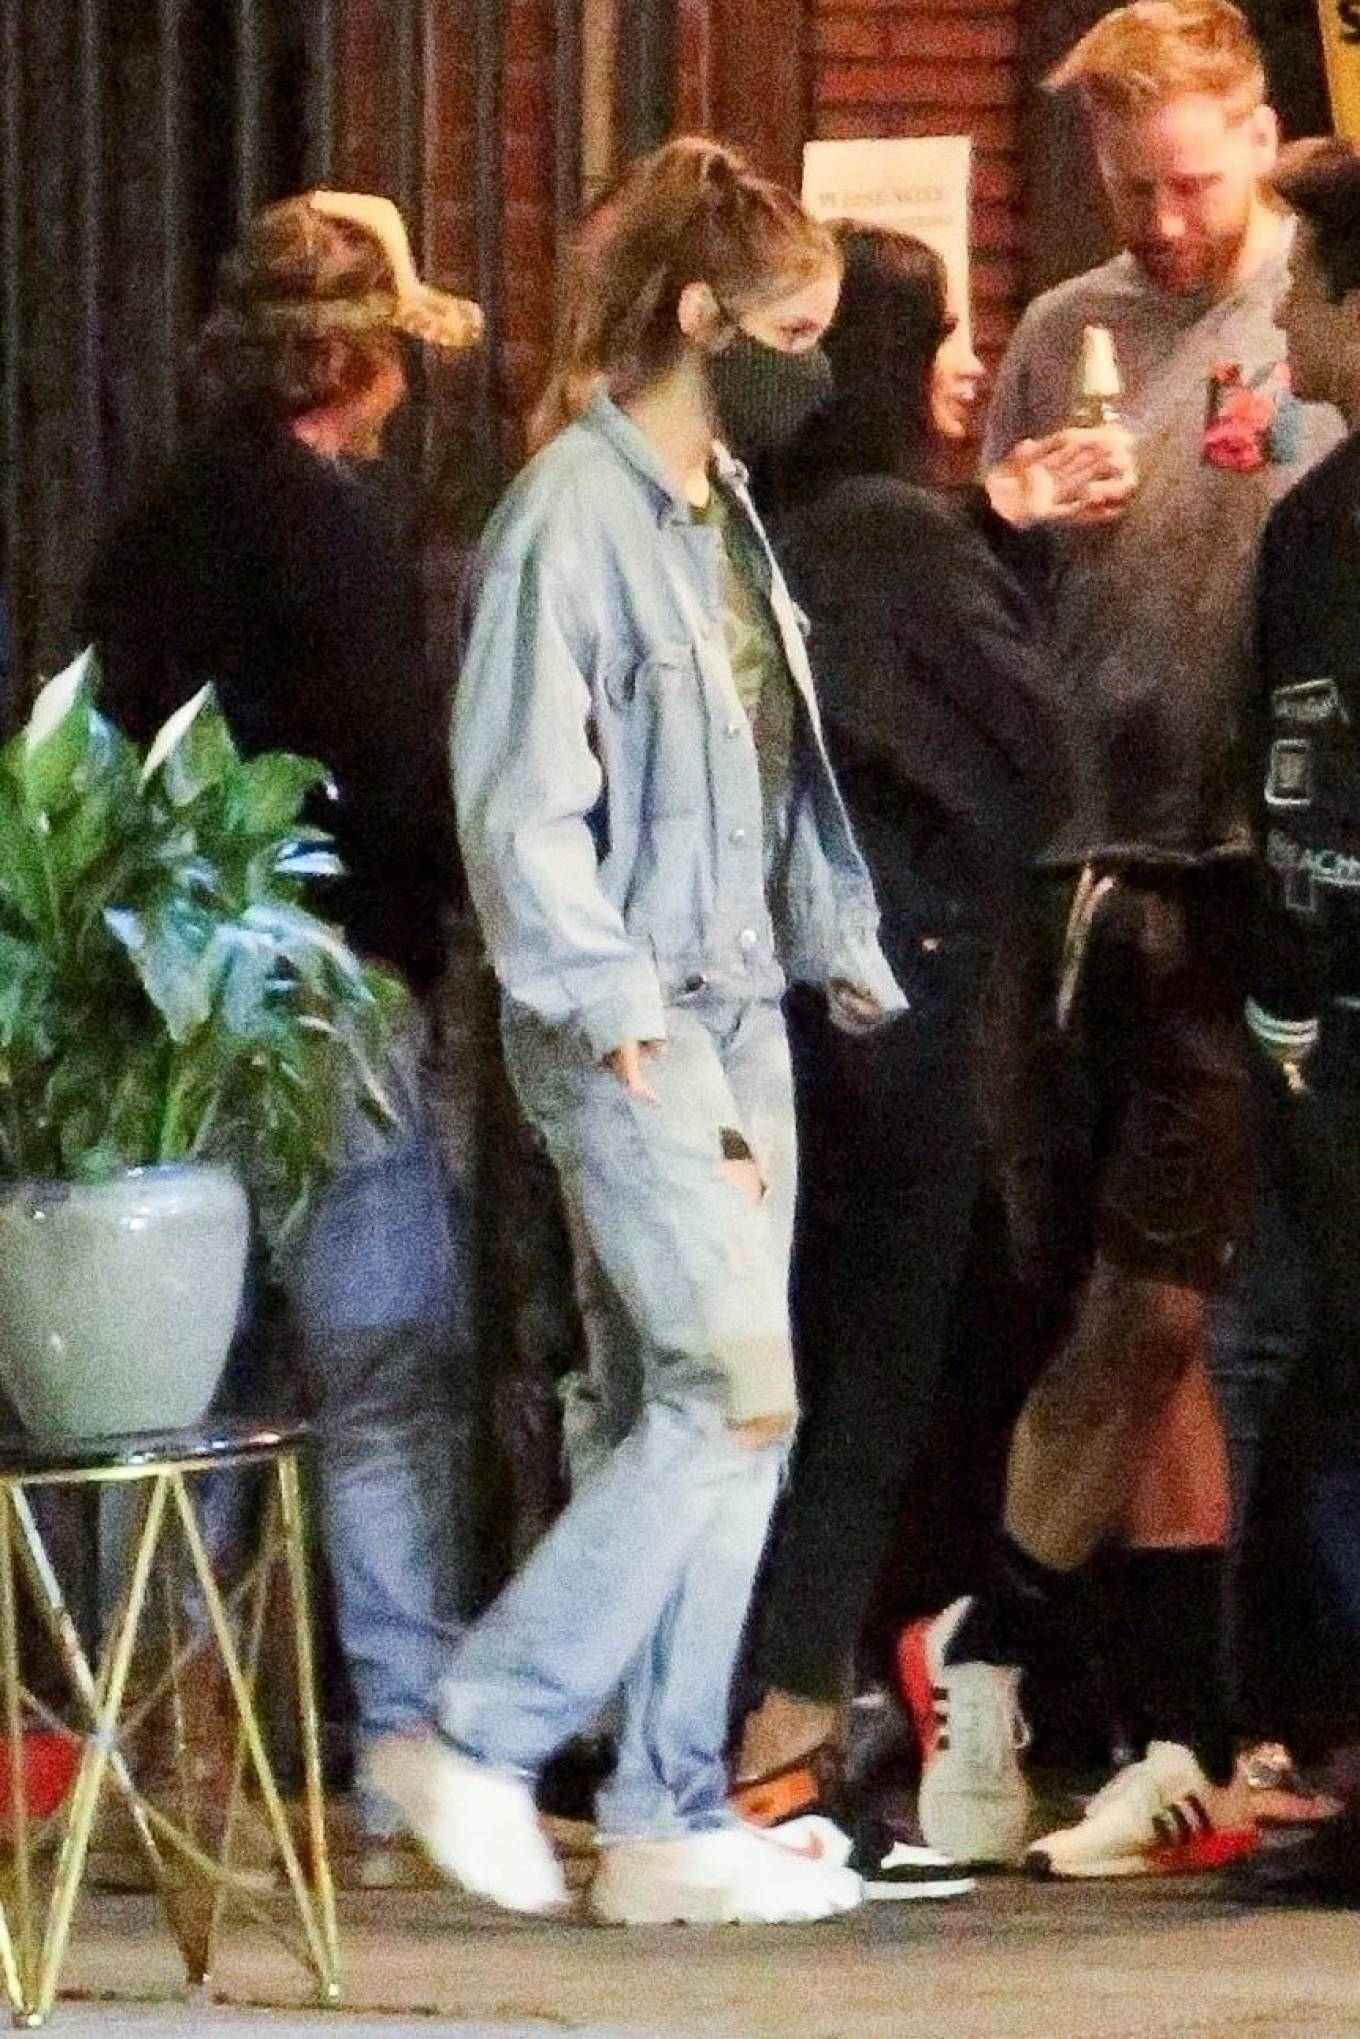 Barbara Palvin 2020 : Dylan Sprouse and Barbara Palvin with KJ Apa and Stella Maxwell – Night out in Silverlake -04